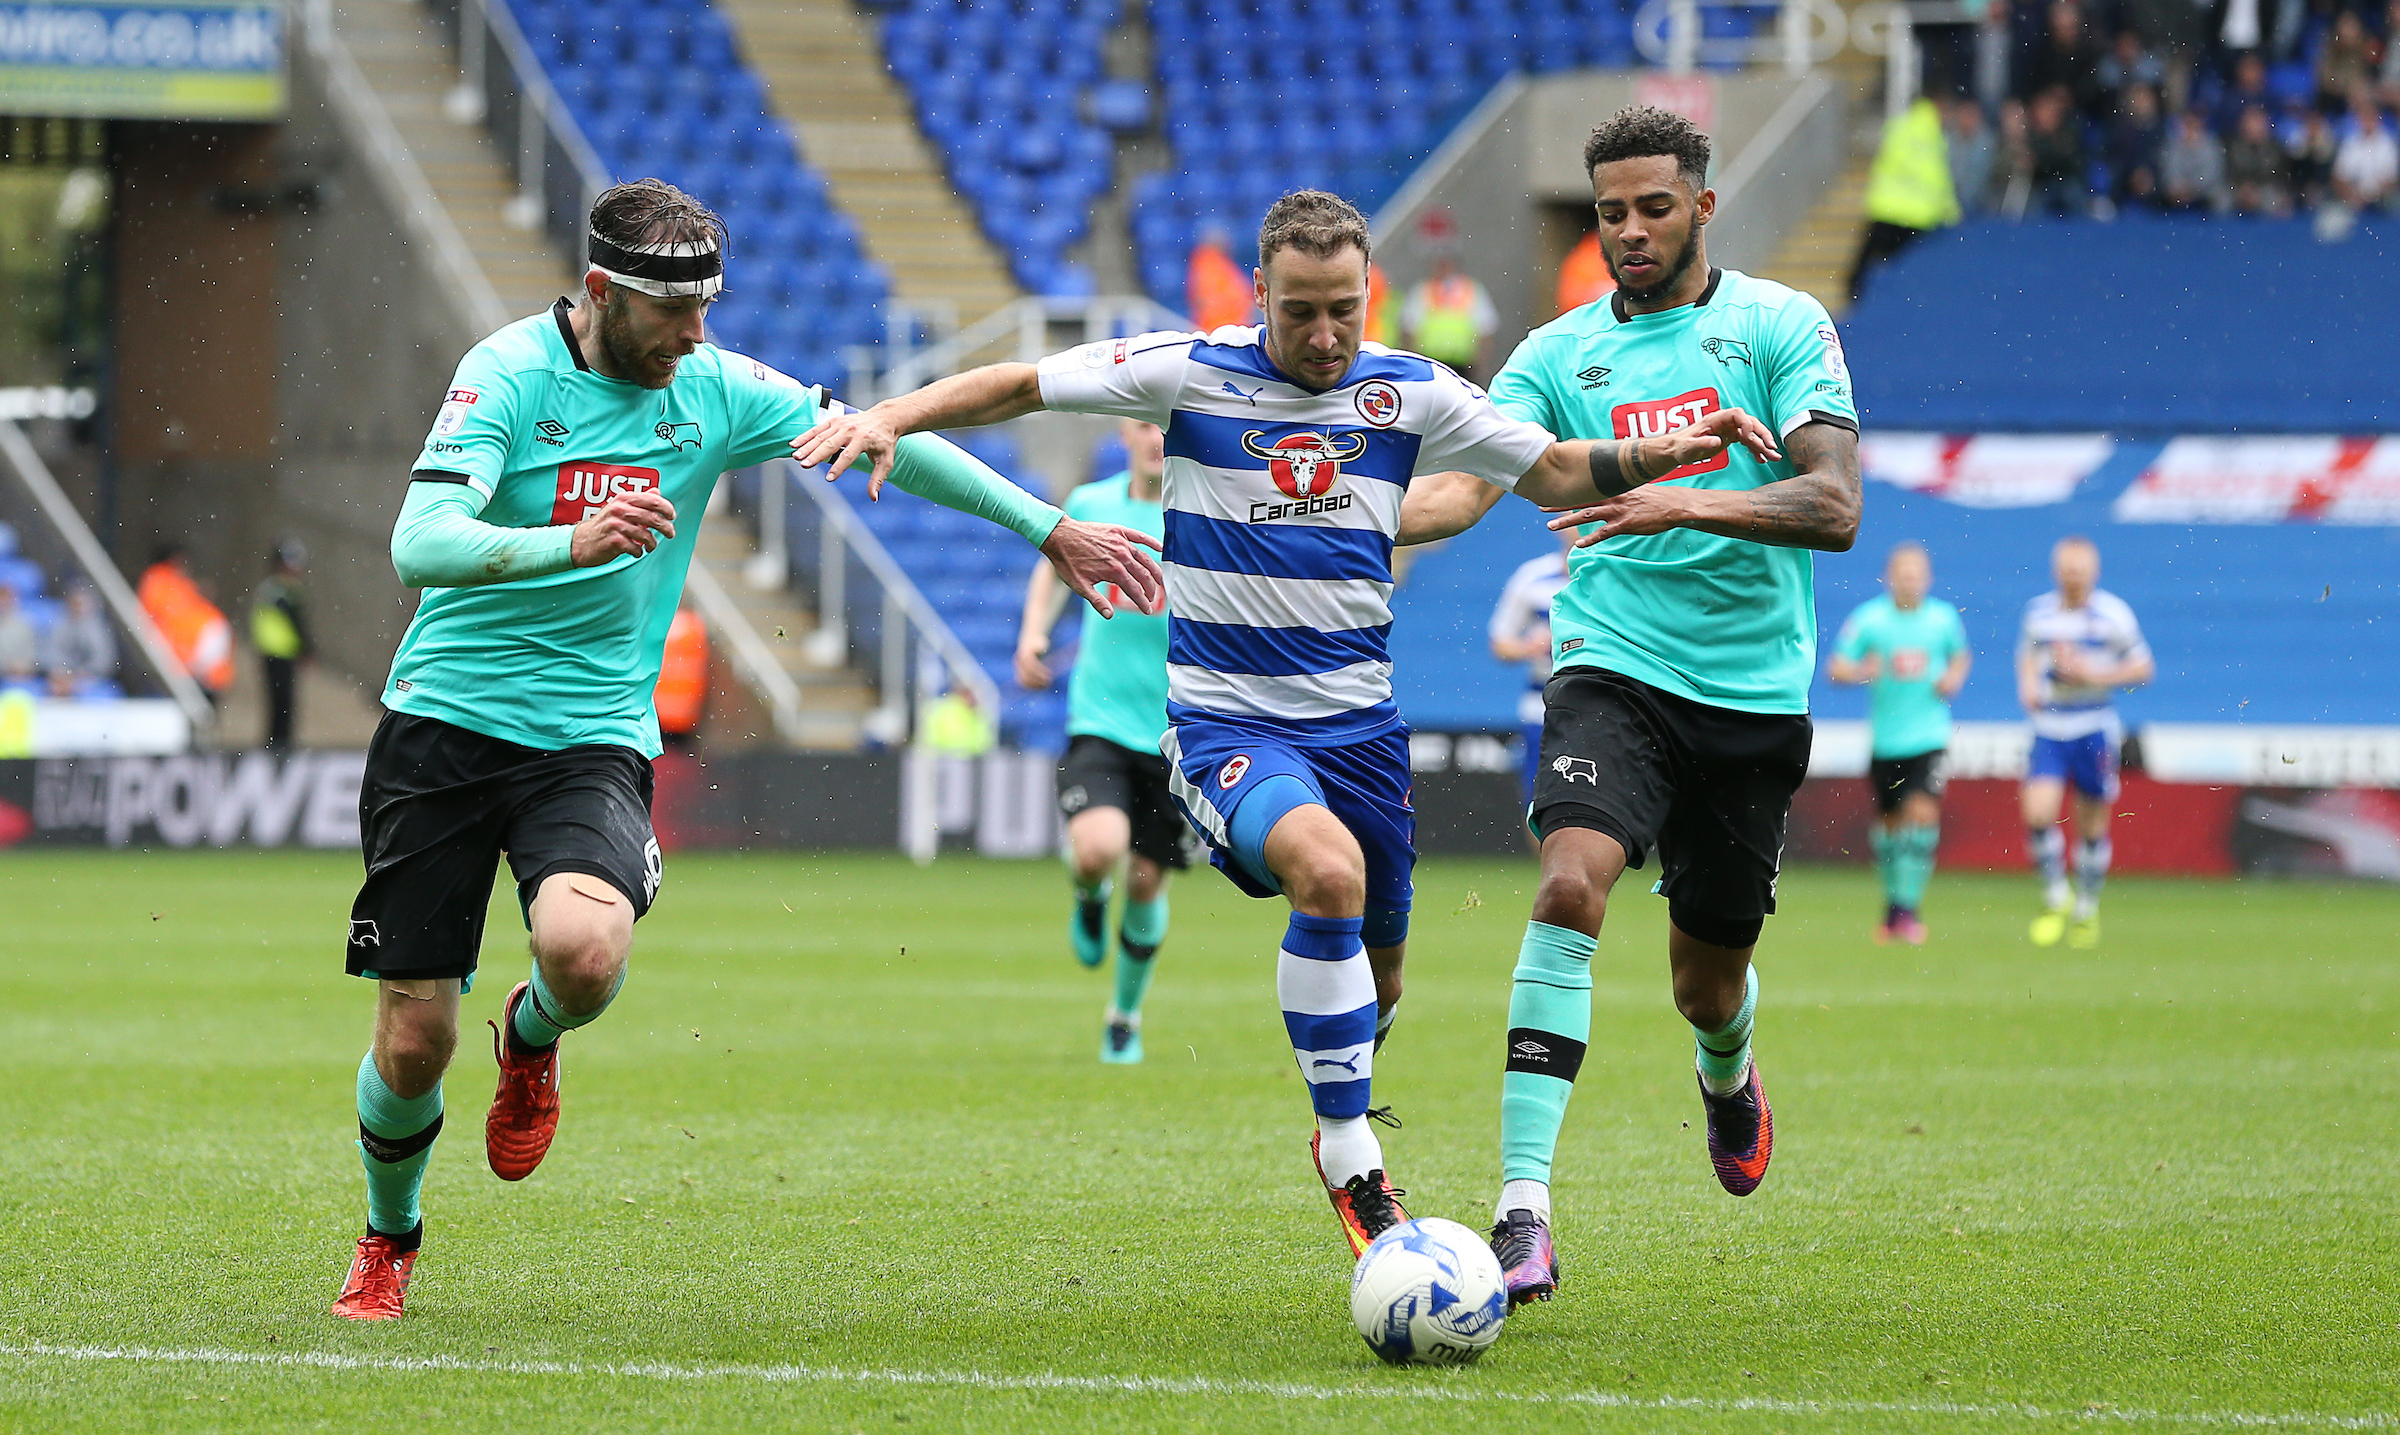 Reading FC: Roy Beerens insists - 'We'll be well prepared for QPR clash' - Reading Chronicle